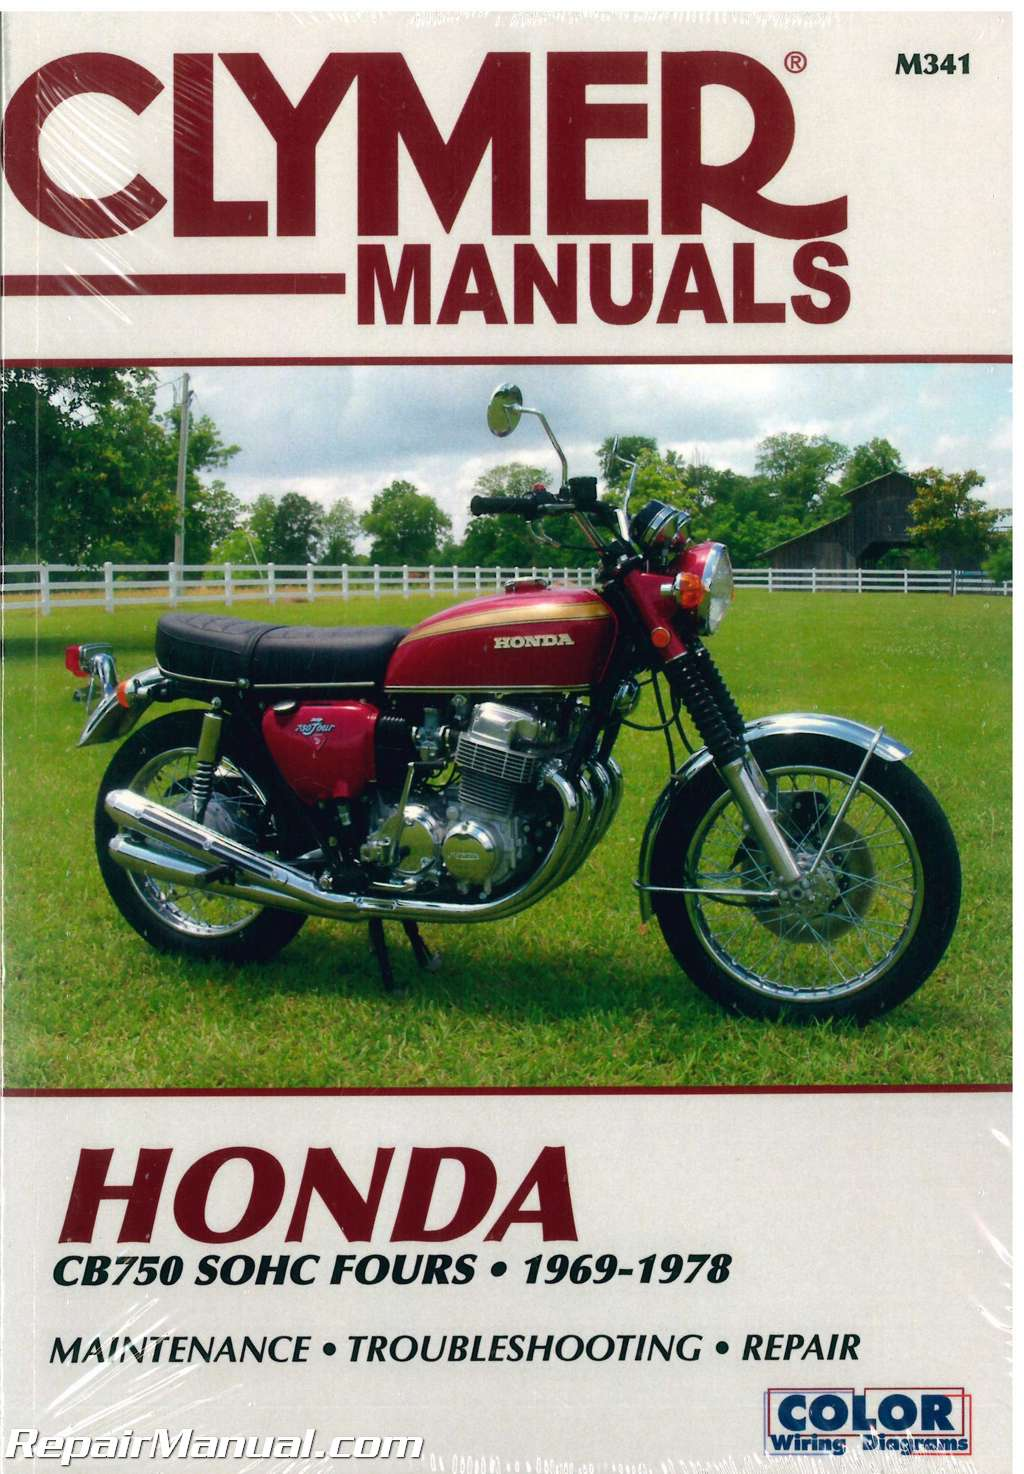 1969 1978 Honda Cb750 Sohc Fours Motorcycle Repair Manual Clymer 1982 Wiring Diagram